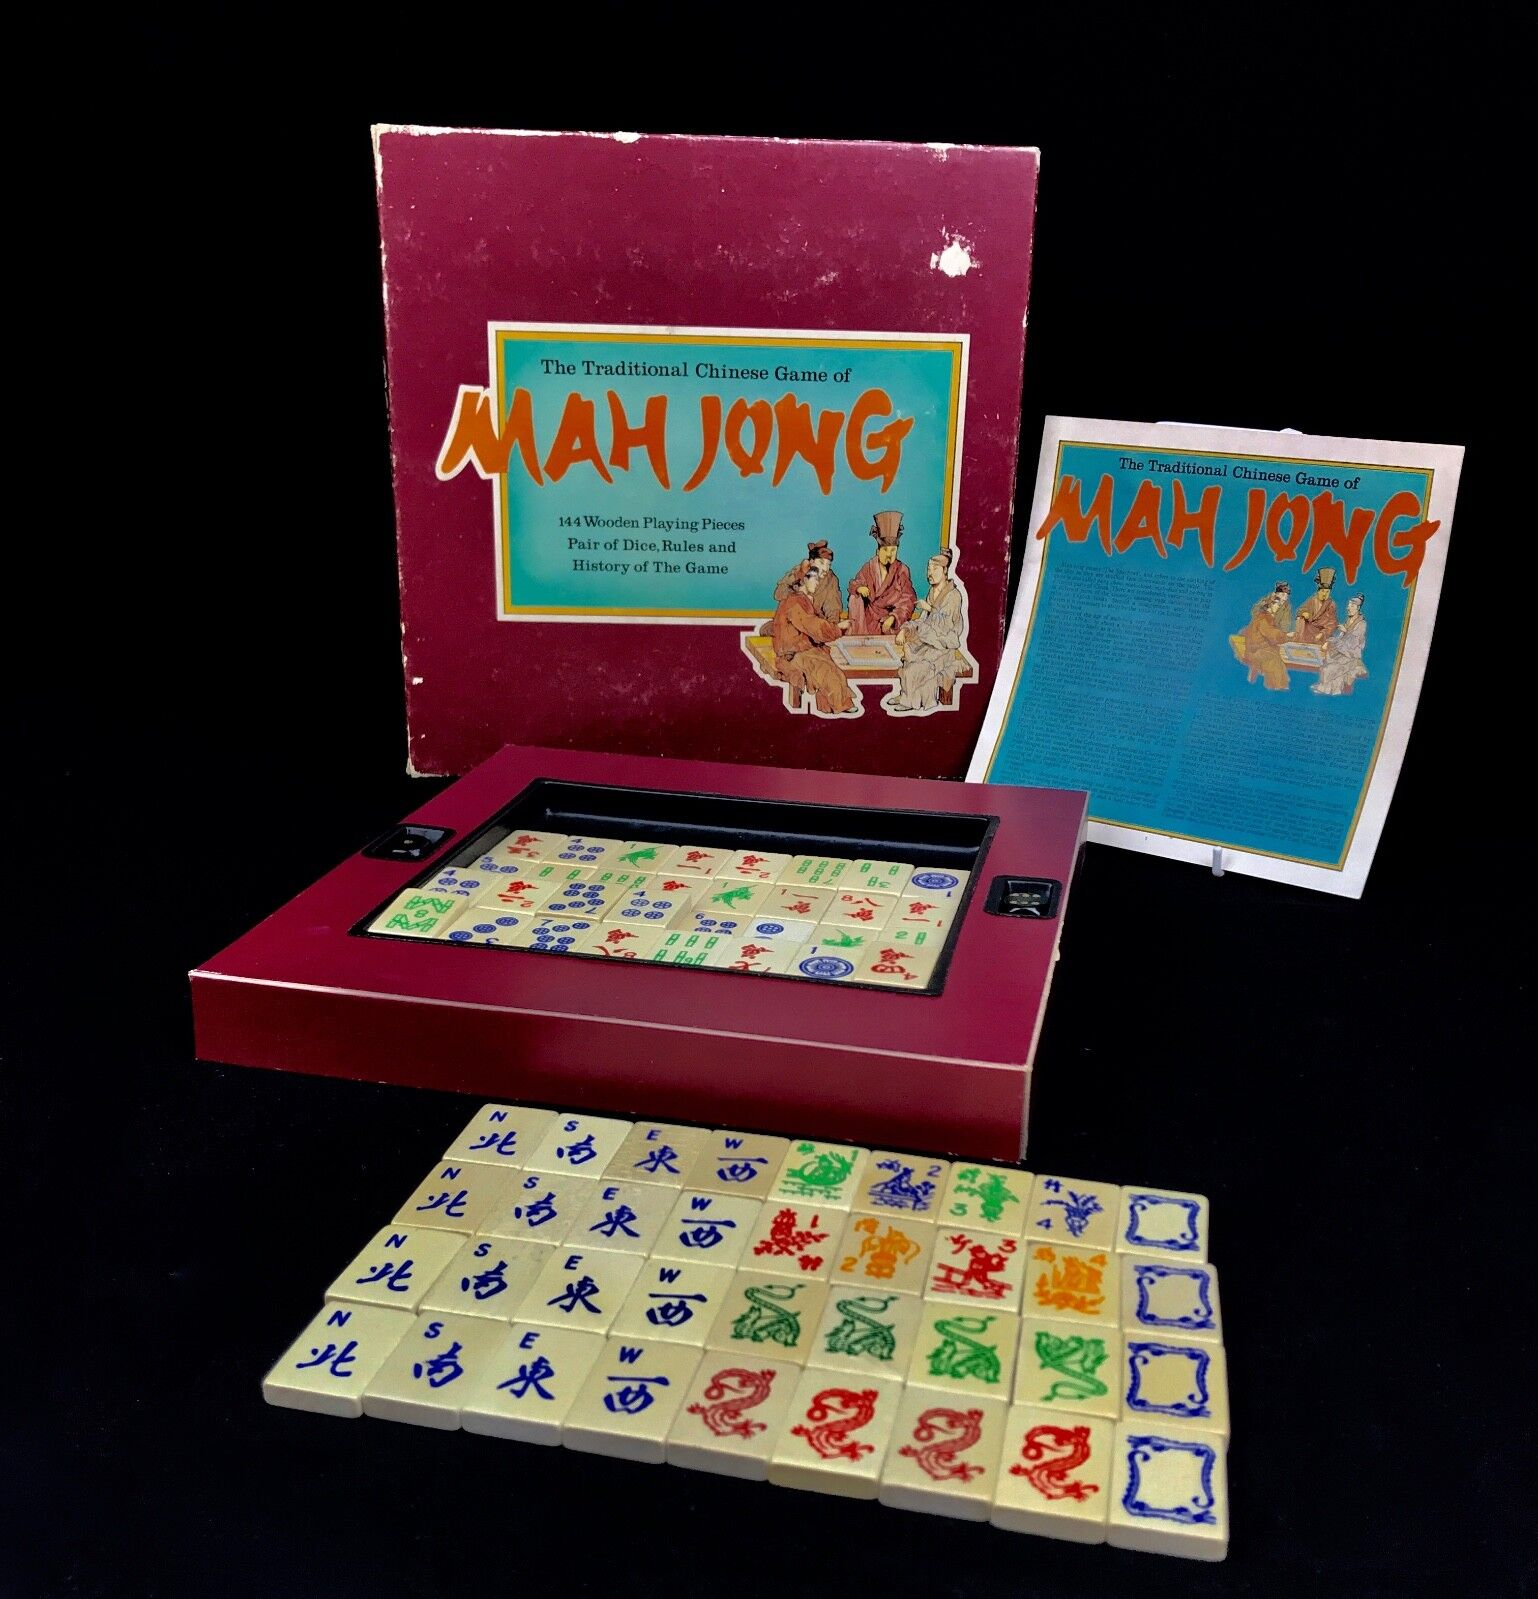 Vintage Wooden Mahjong Set In Original Box   Mah Jong Game   20th Century